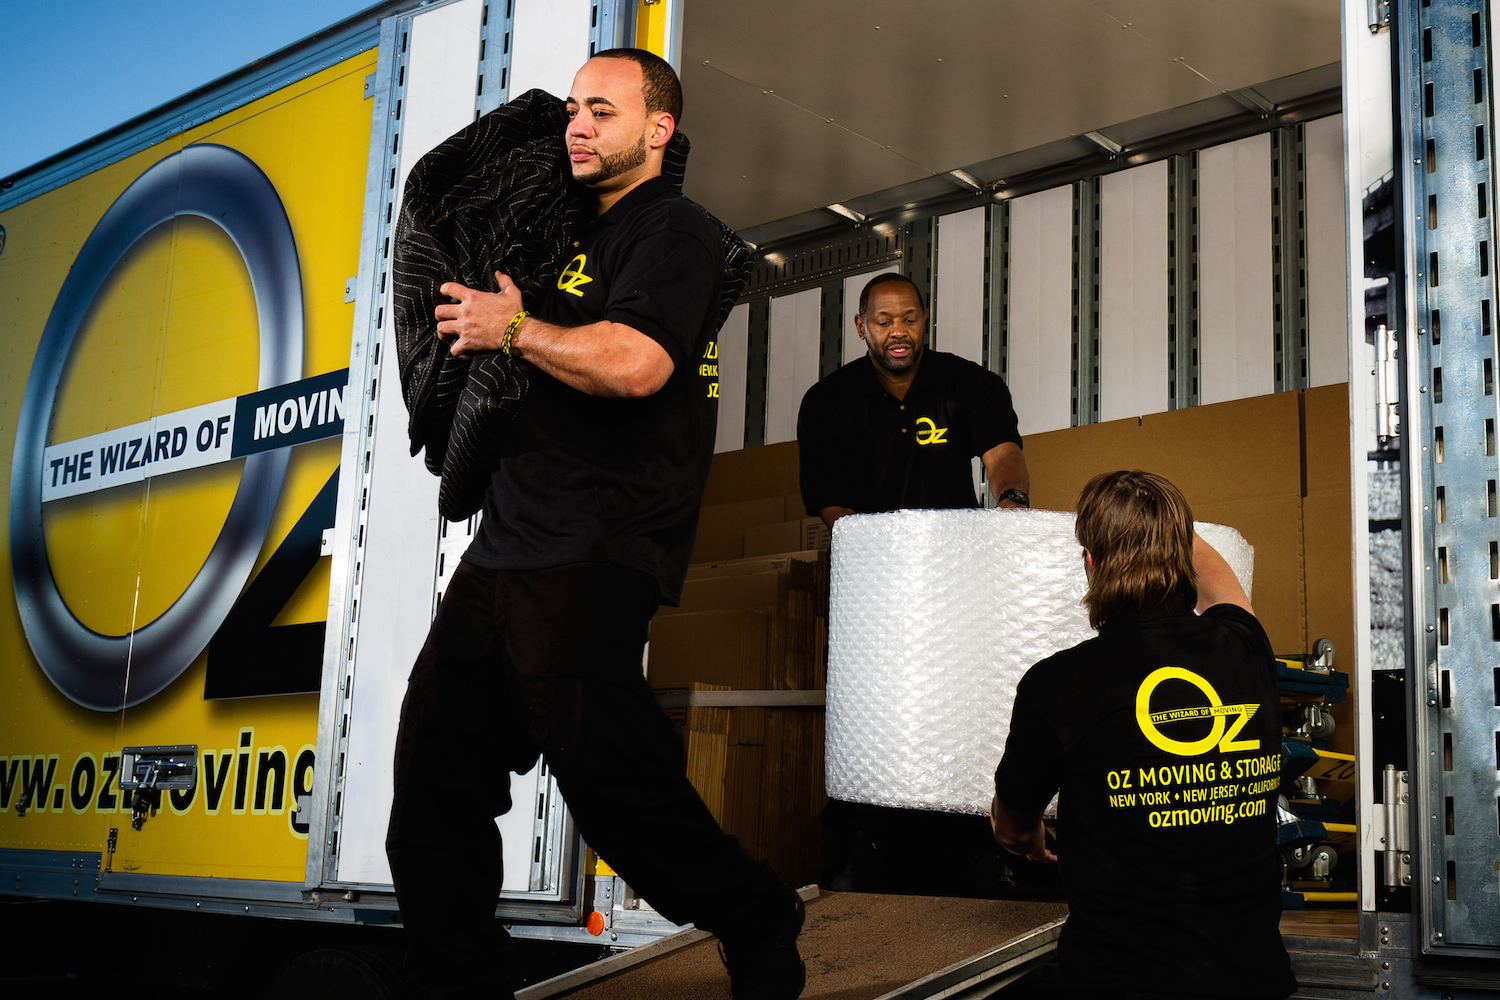 Oz Moving & Storage movers